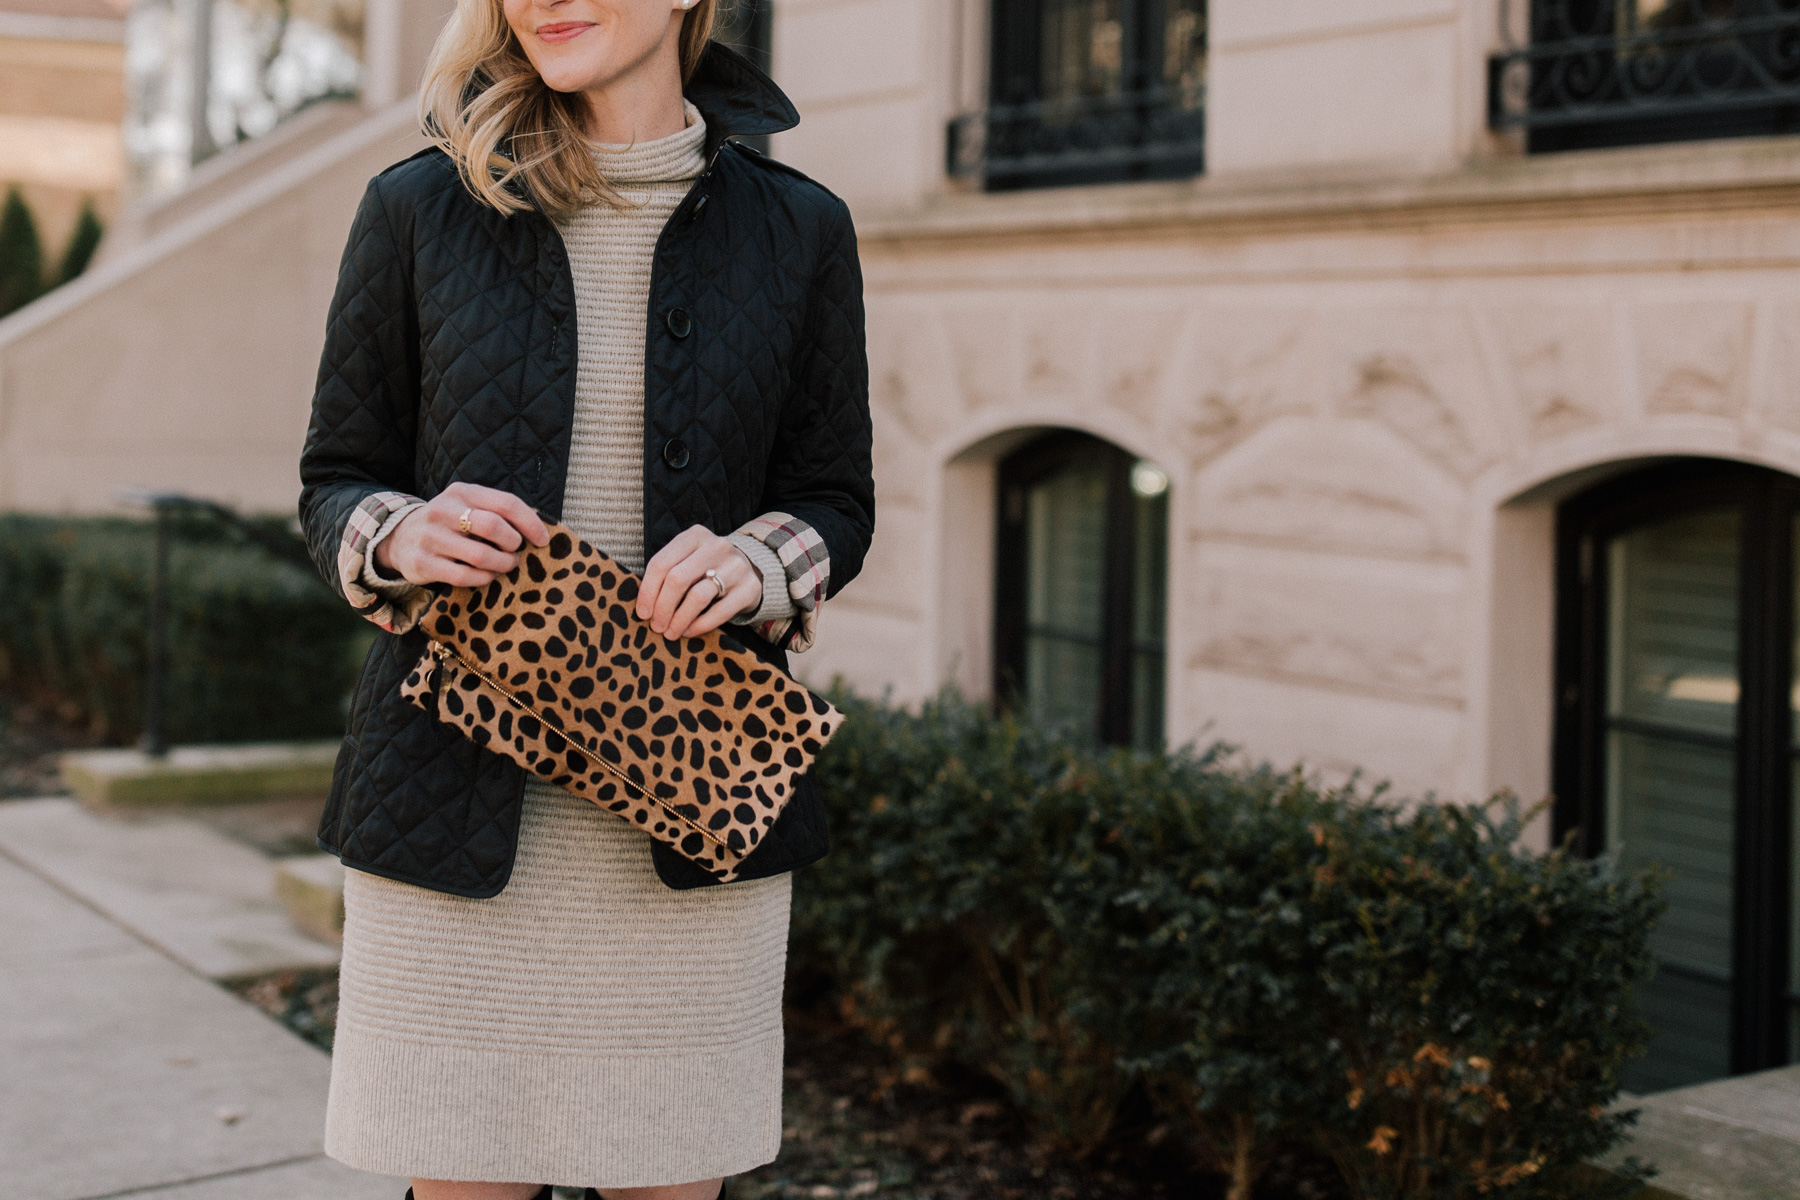 recent finds: sale picks plus this leopard clutch